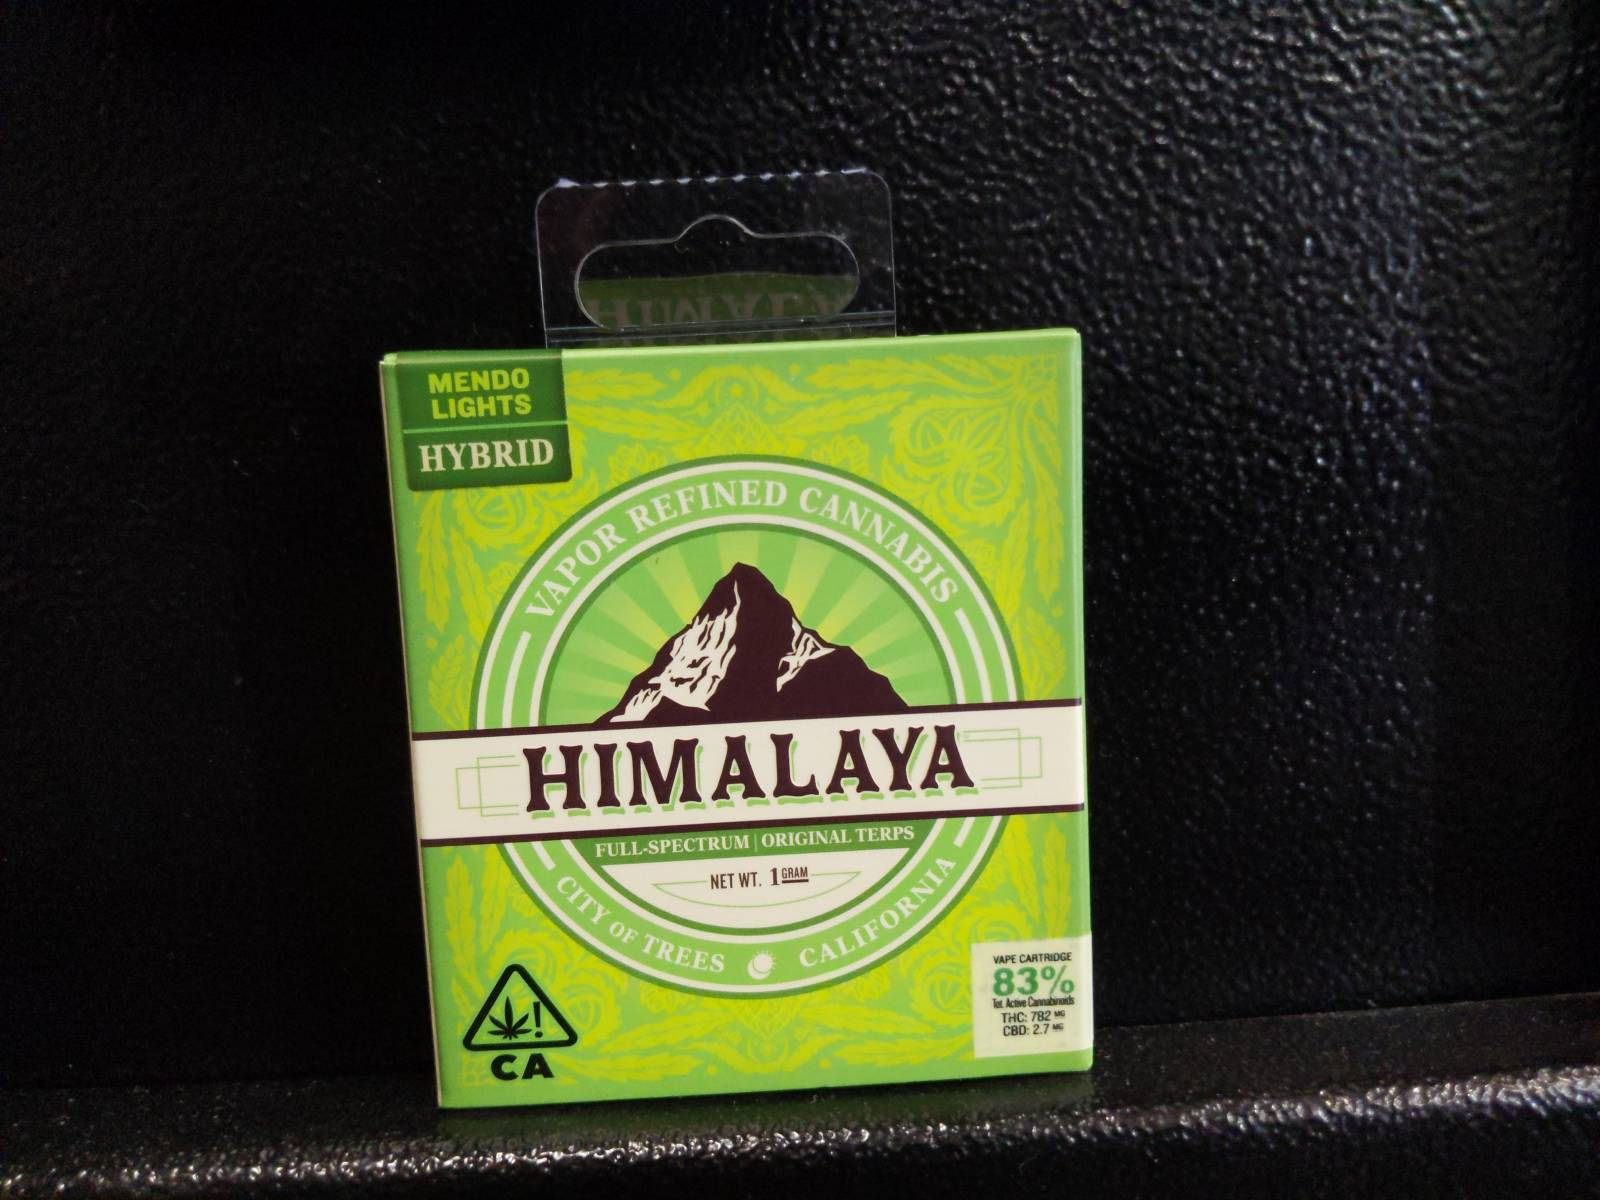 Himalaya 1g Cartridge: Hybrid- Mendo Lights